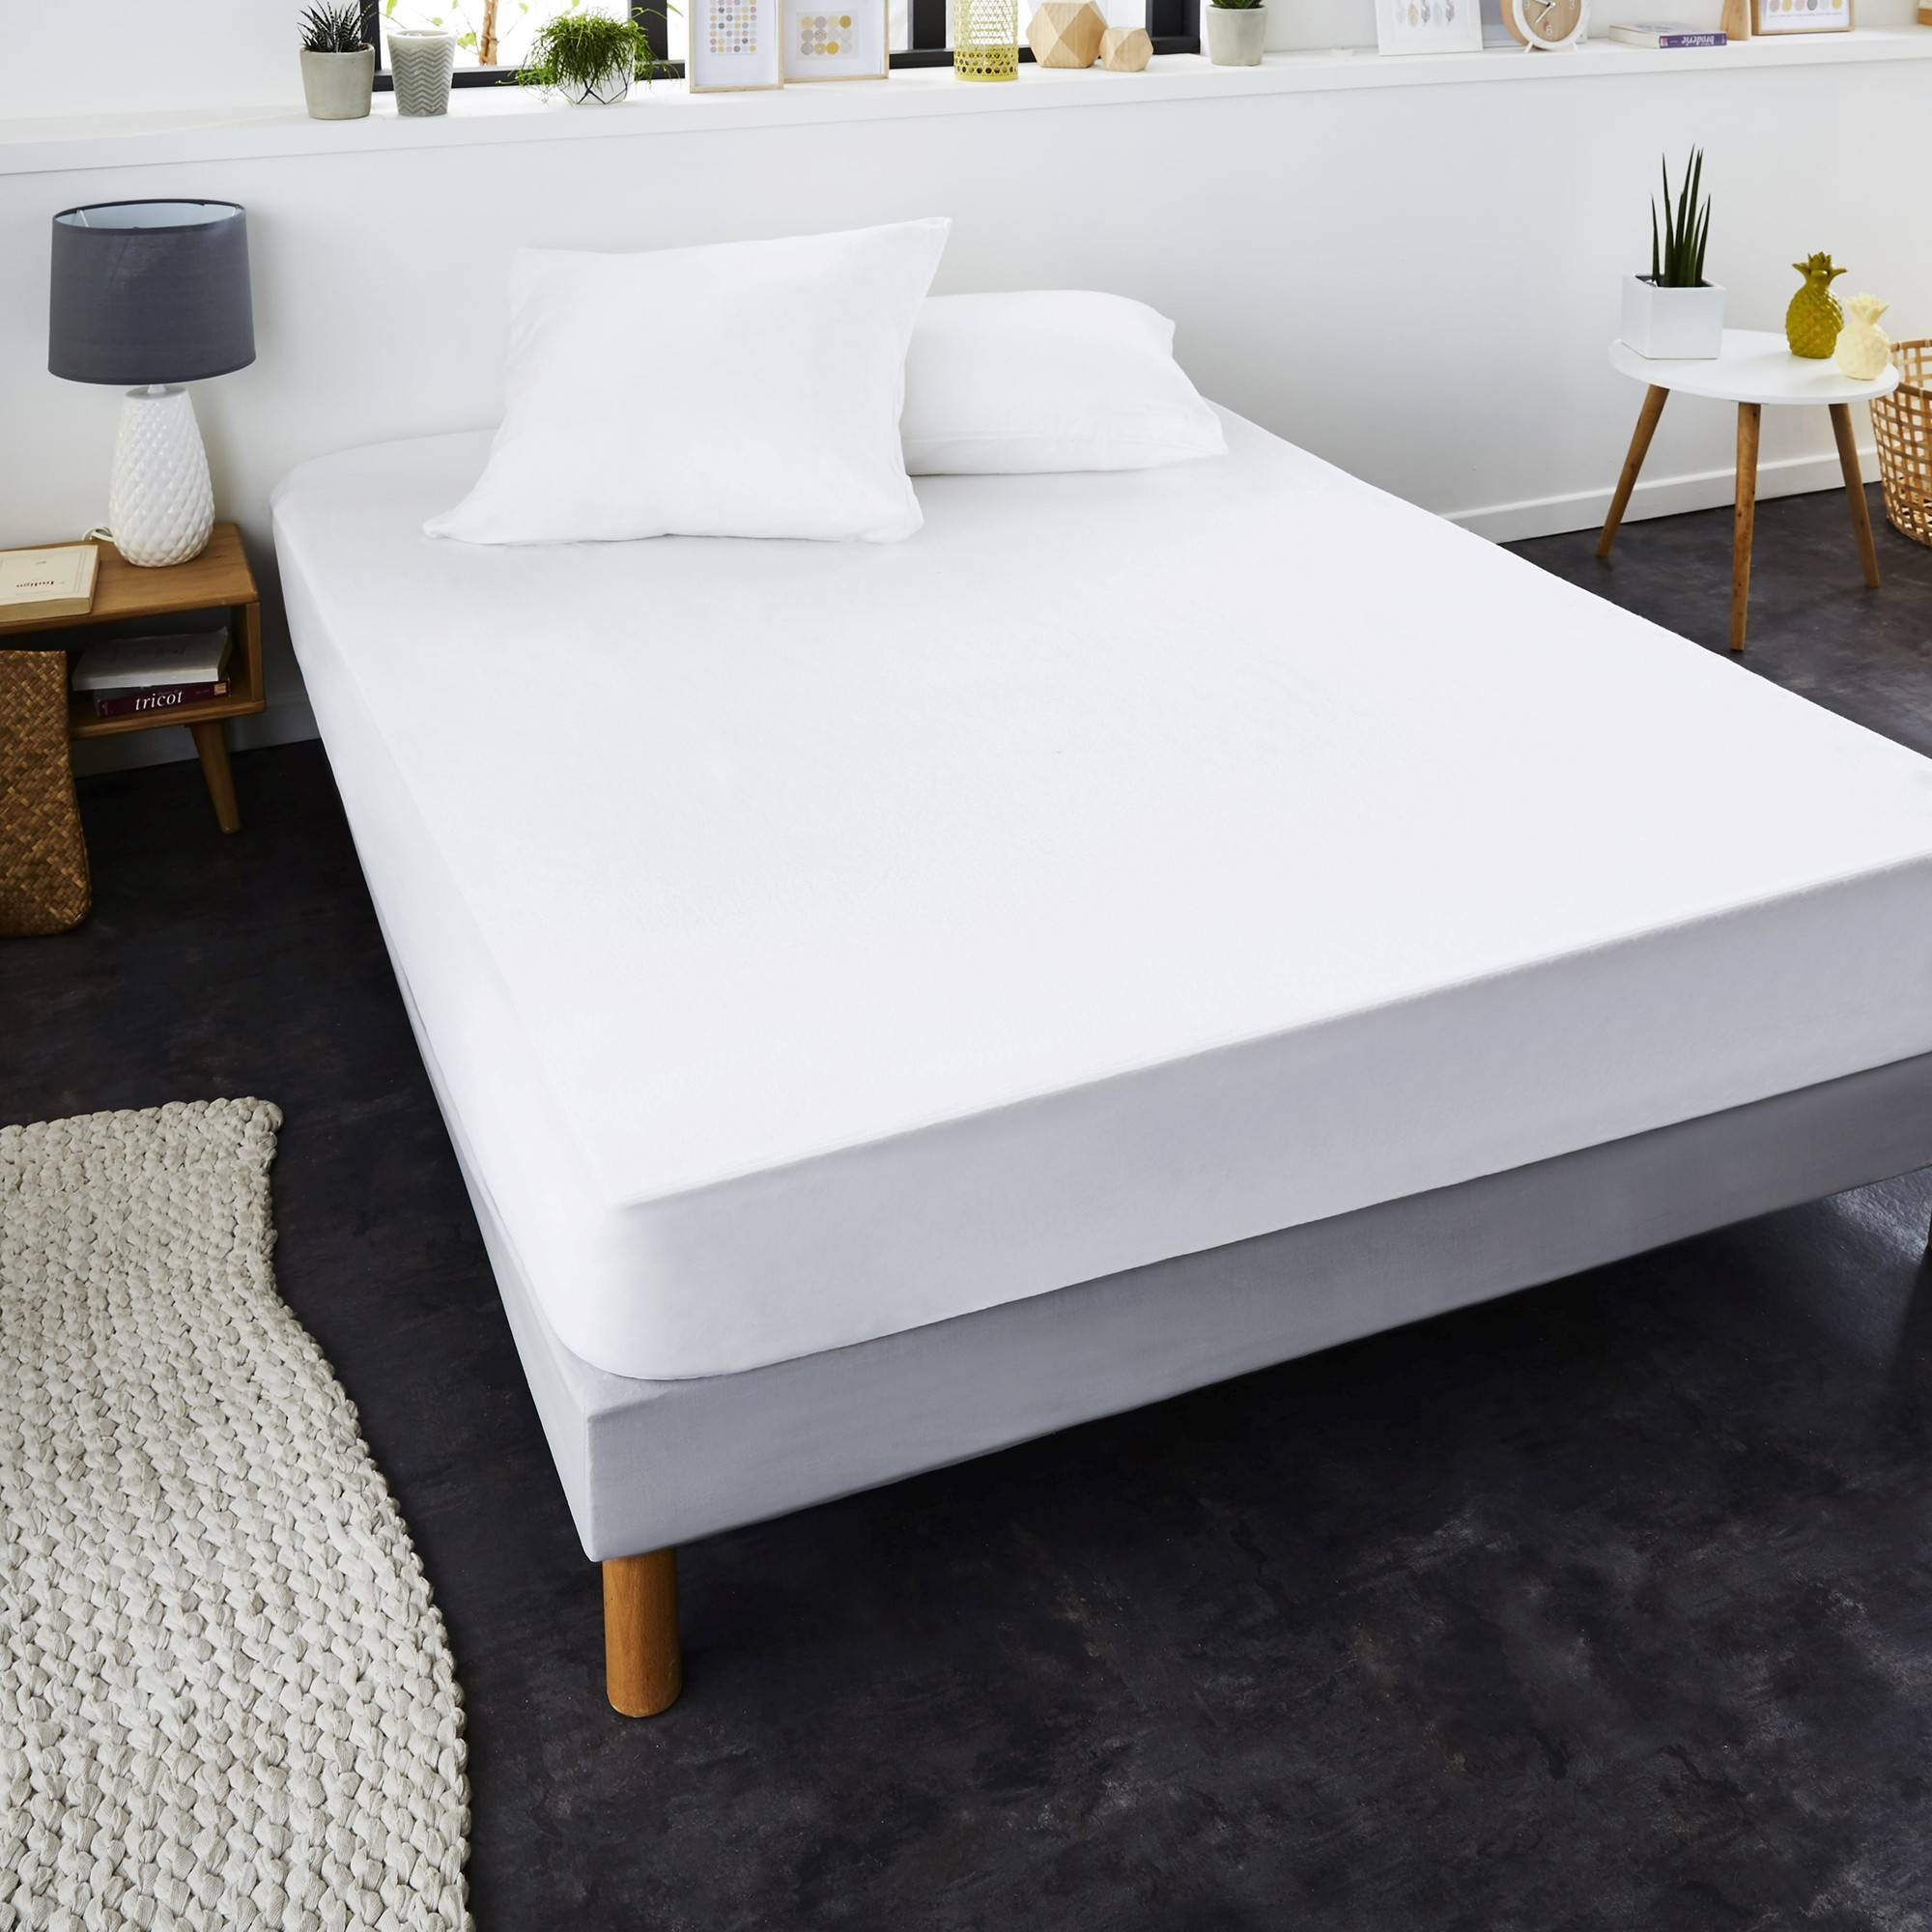 Protège Matelas1 pers 90x200cm - Blanc Protège-matelas anti-acariens Greenfirst® molleton absorbant - Blancheporte